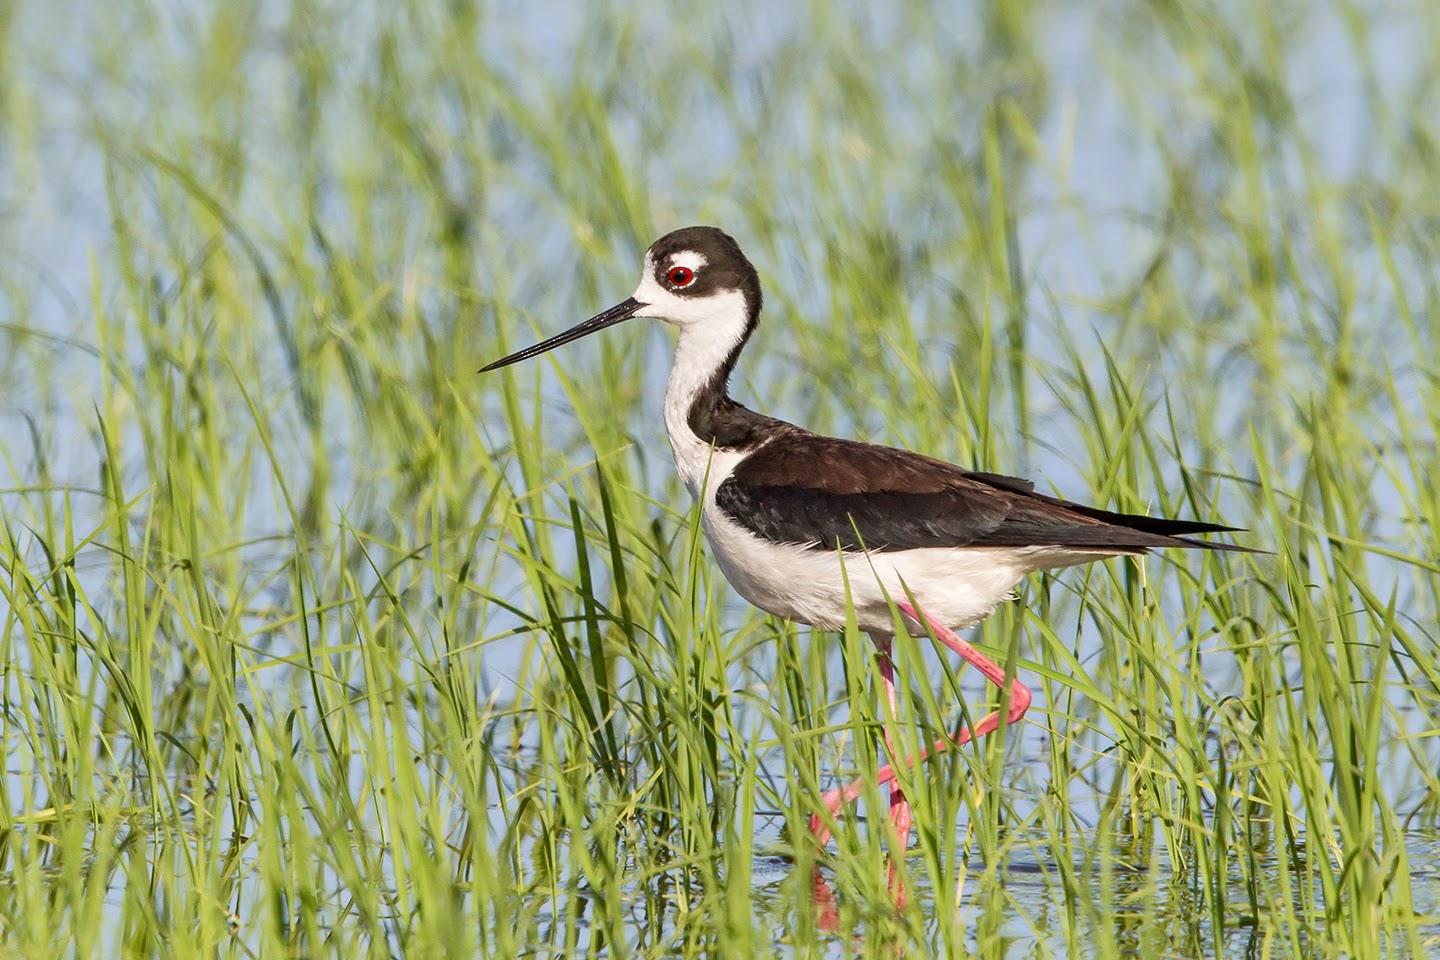 California Rice Growers welcome opportunity to help Waterbirds